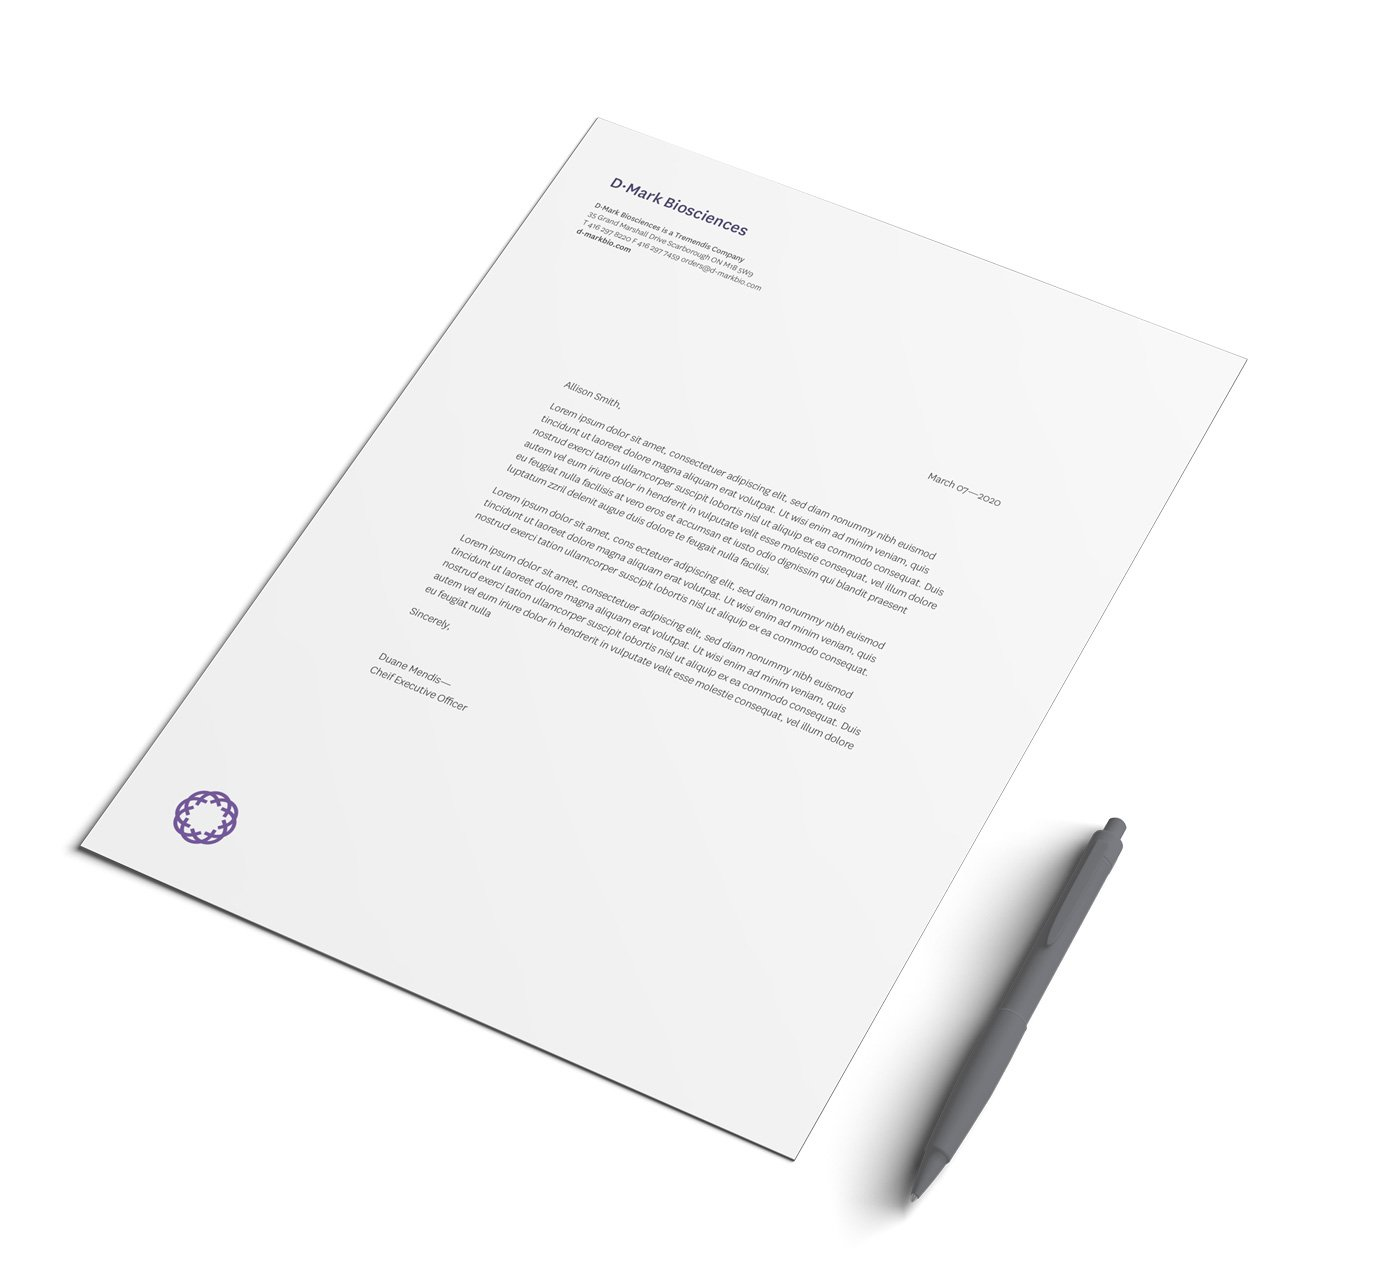 Biosciences company stationery letterhead design